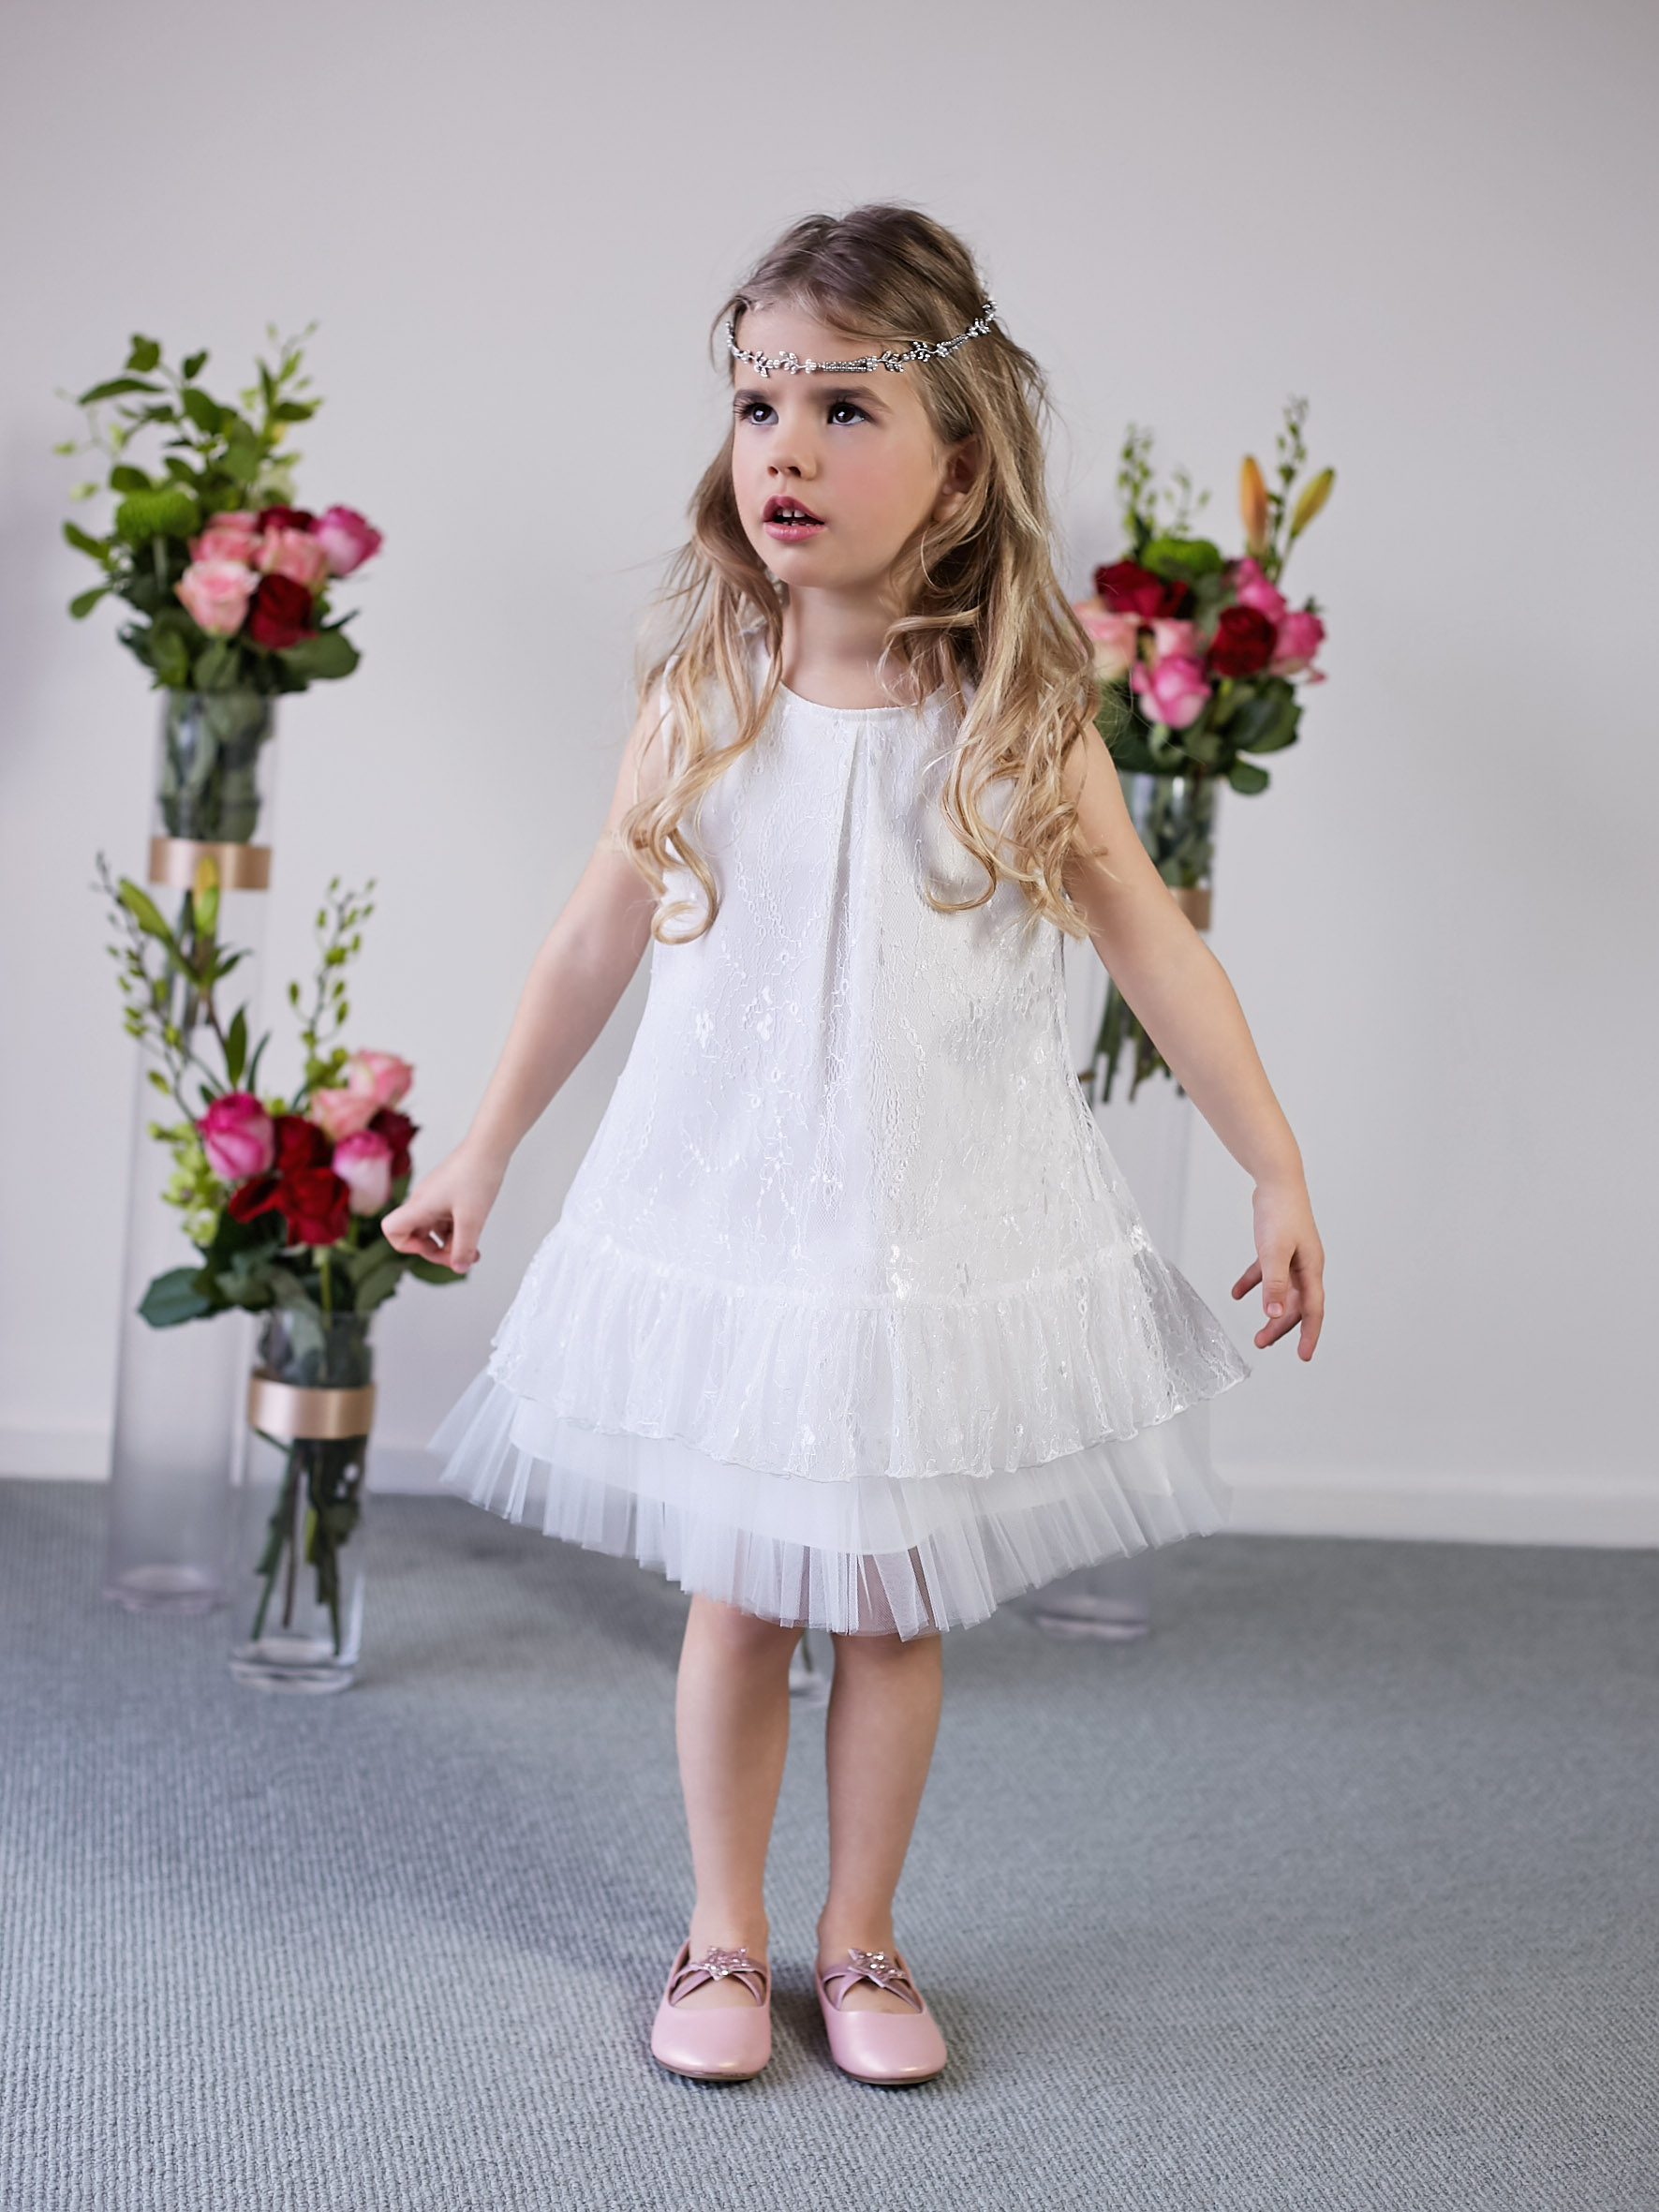 Daisy-May Flower Girl Dress